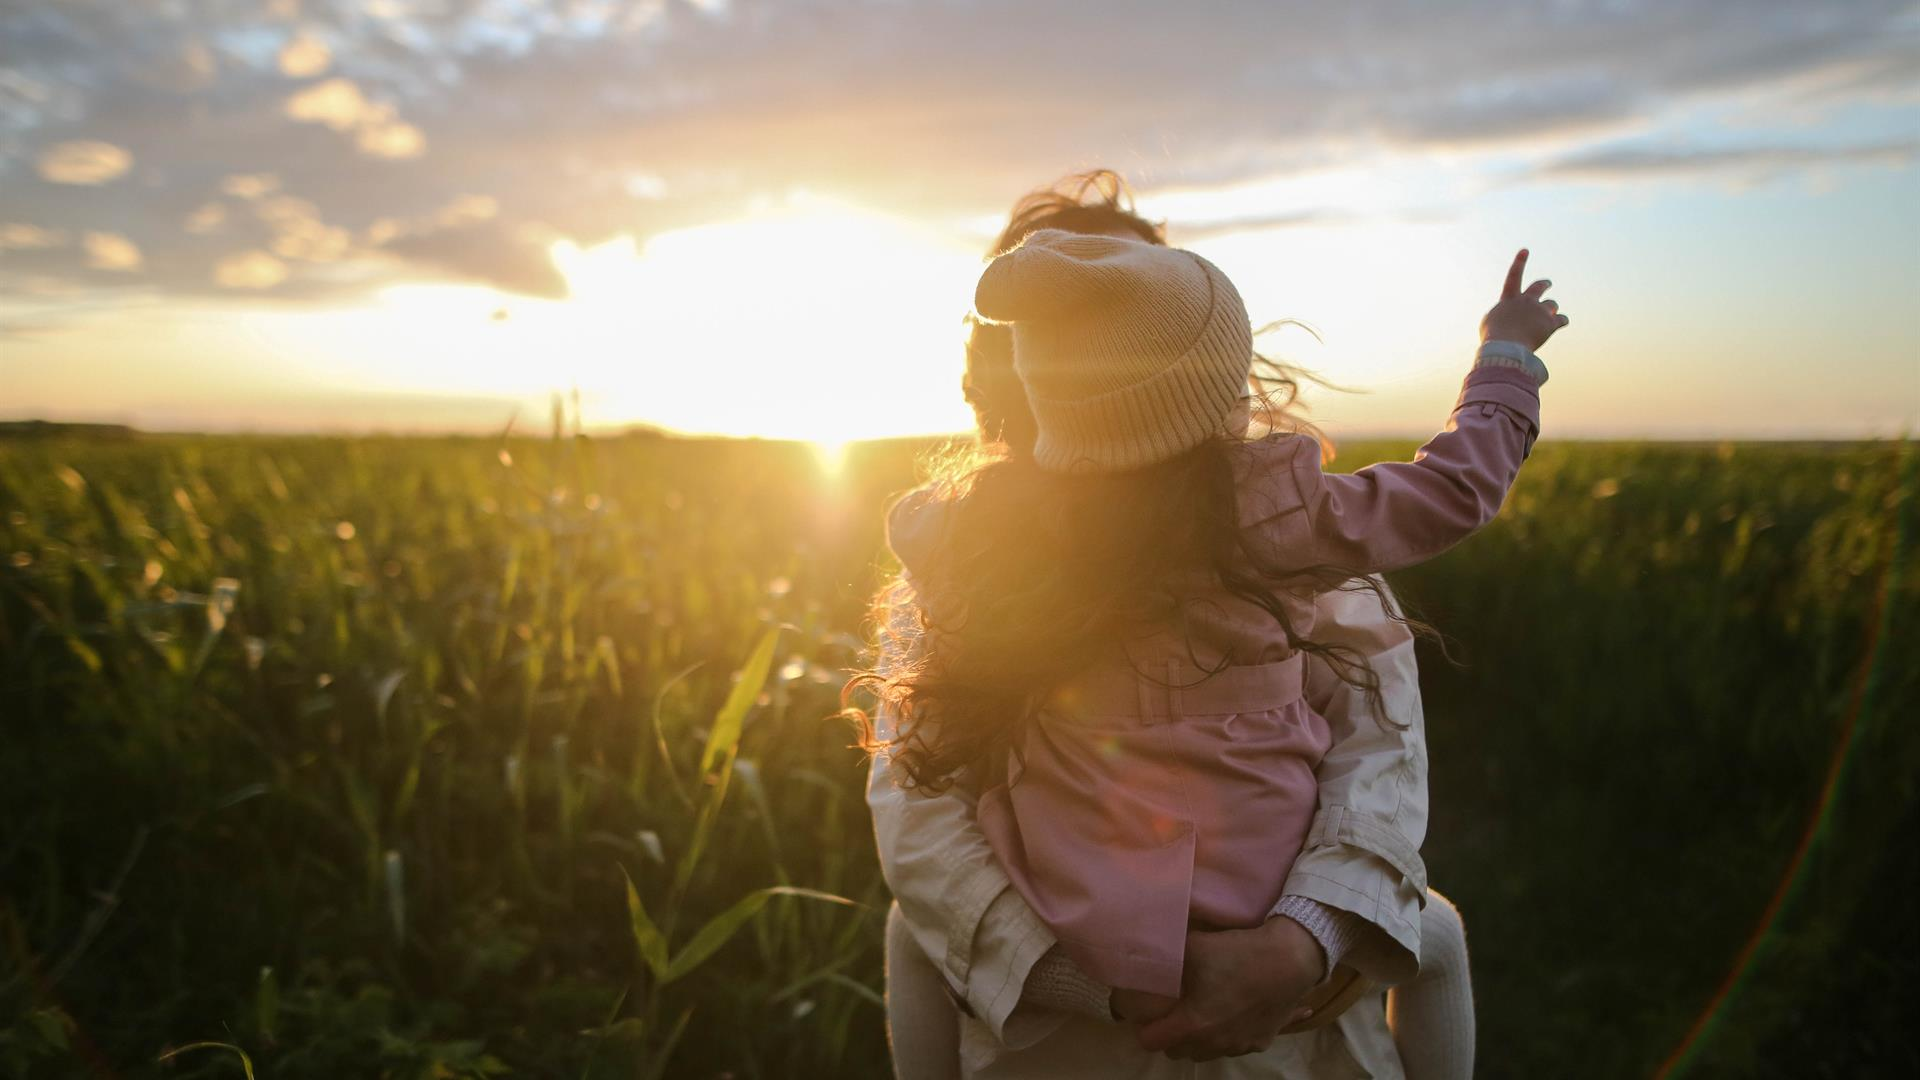 A mother and daughter standing in a field at sunset